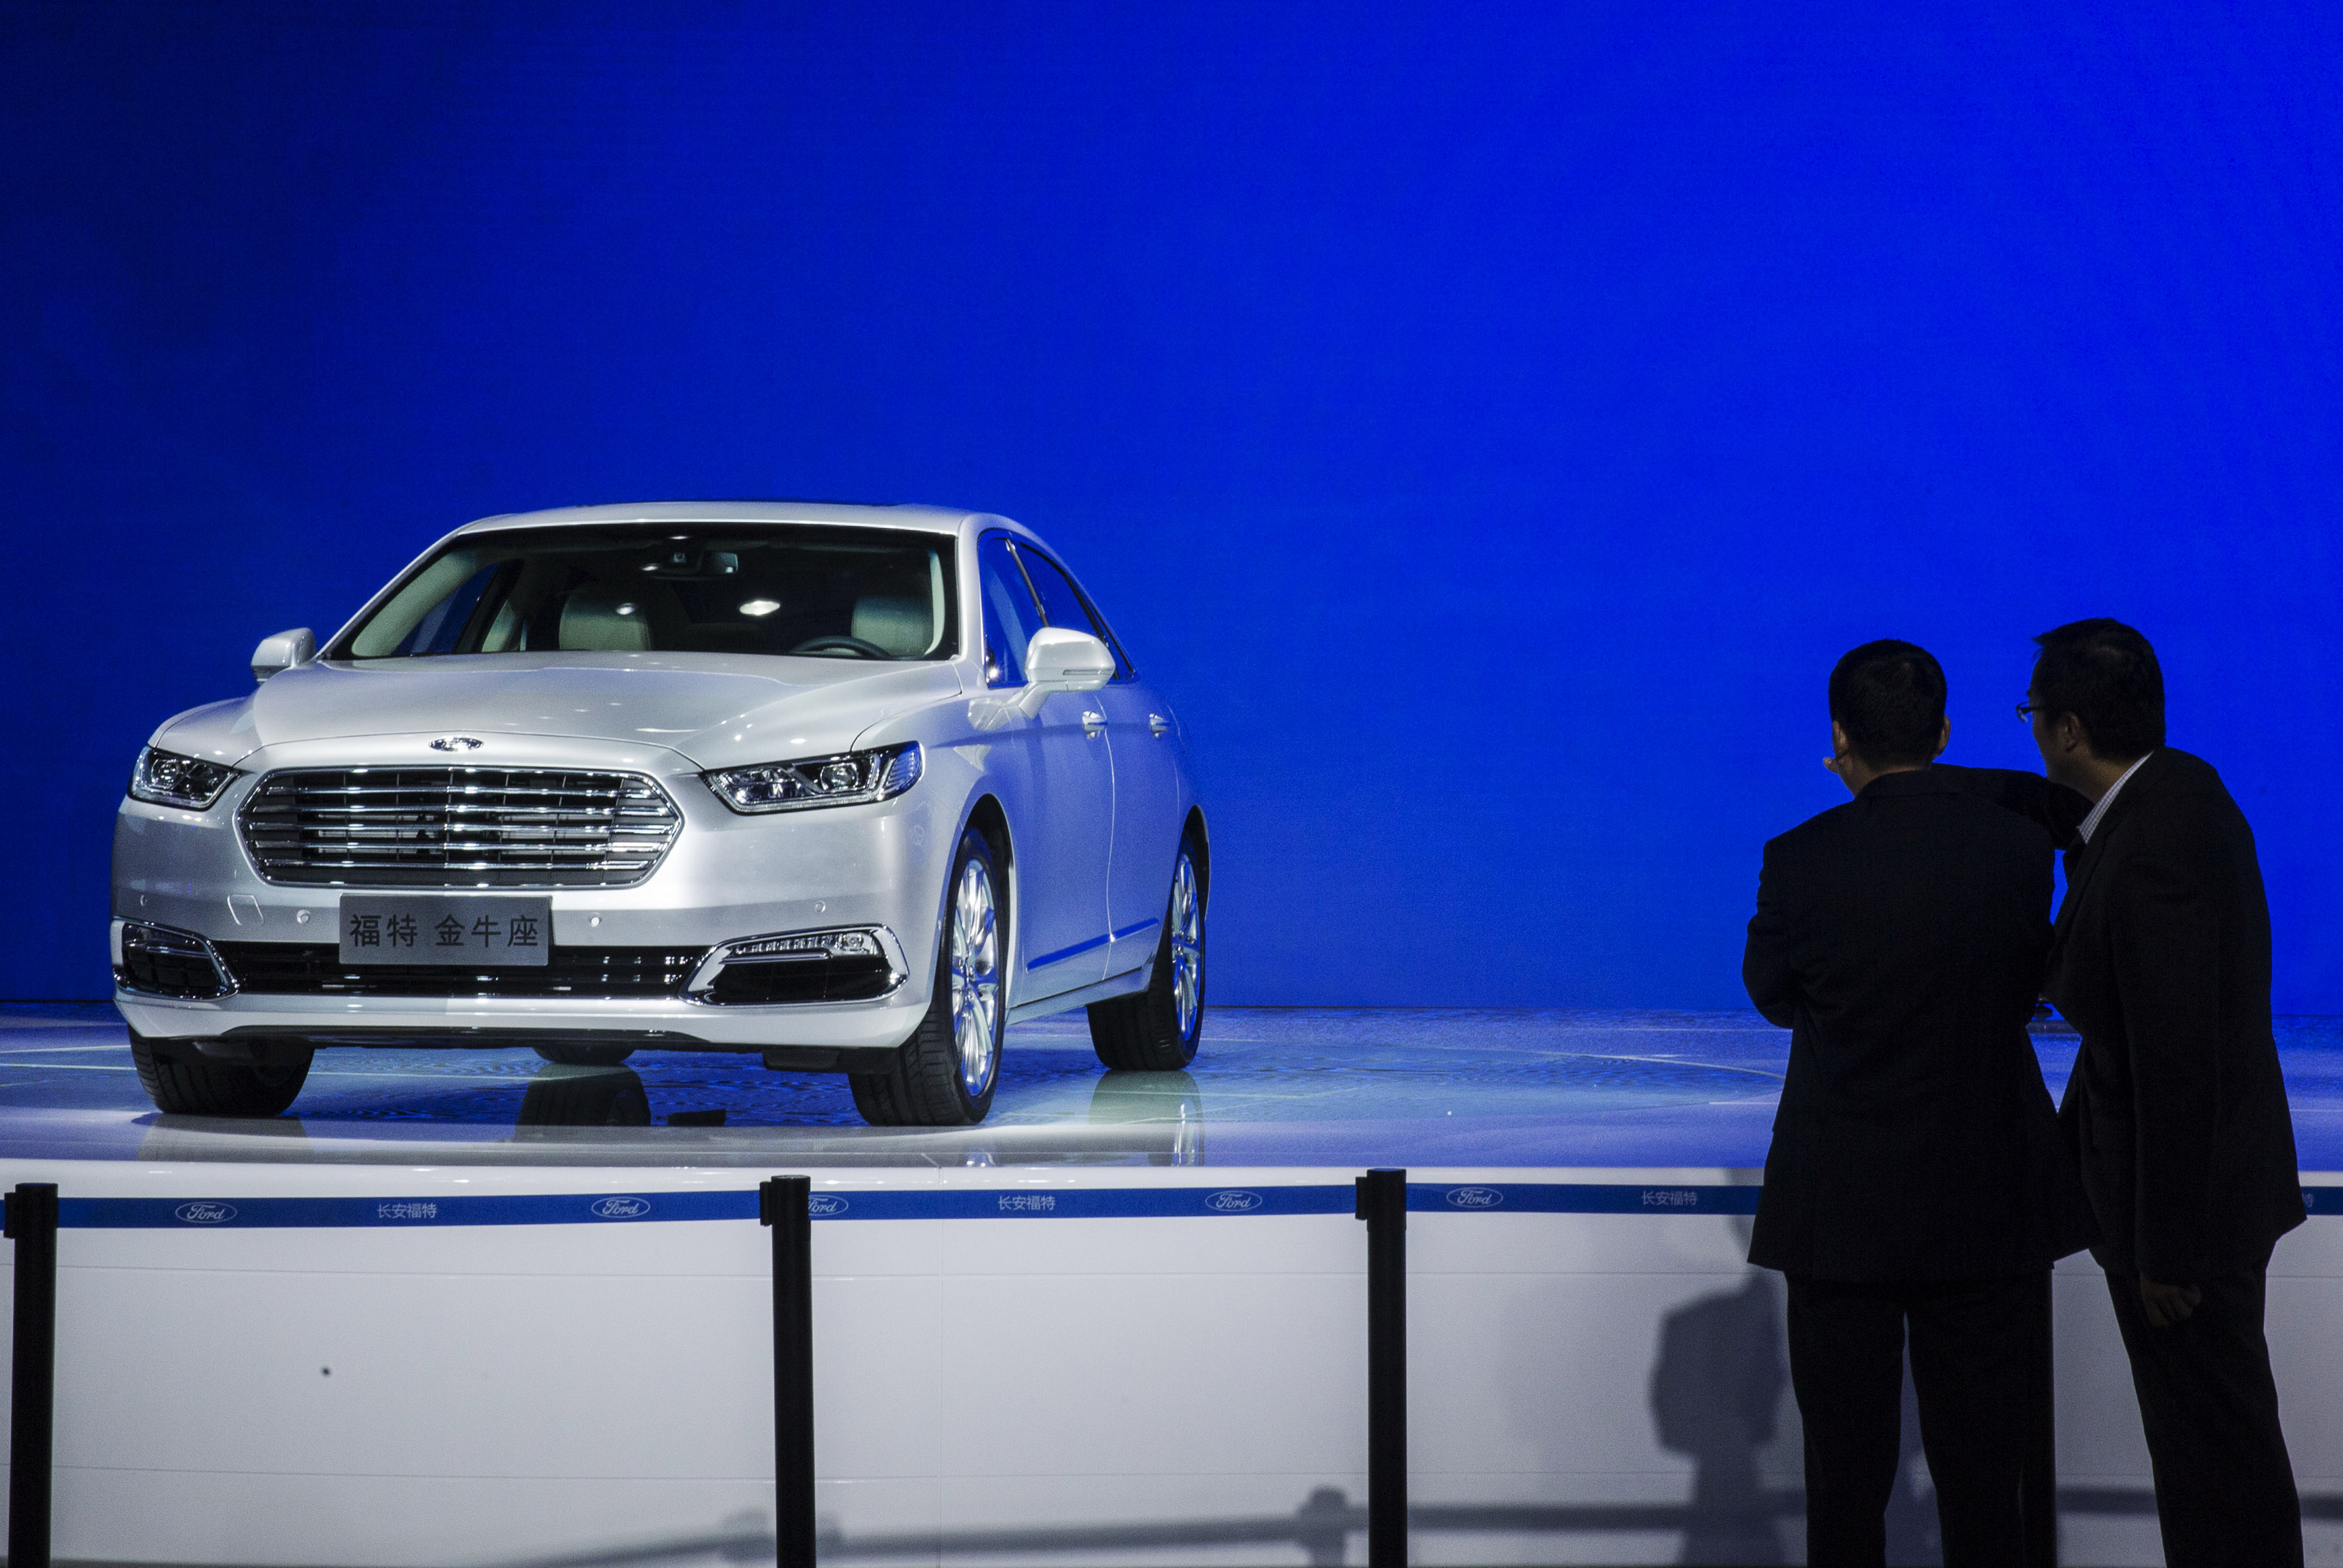 Attendees look at at a Ford Motor Co. Taurus sedan on display during the China (Guangzhou) International Automobile Exhibition in Guangzhou, China, on Friday, Nov. 20, 2015.